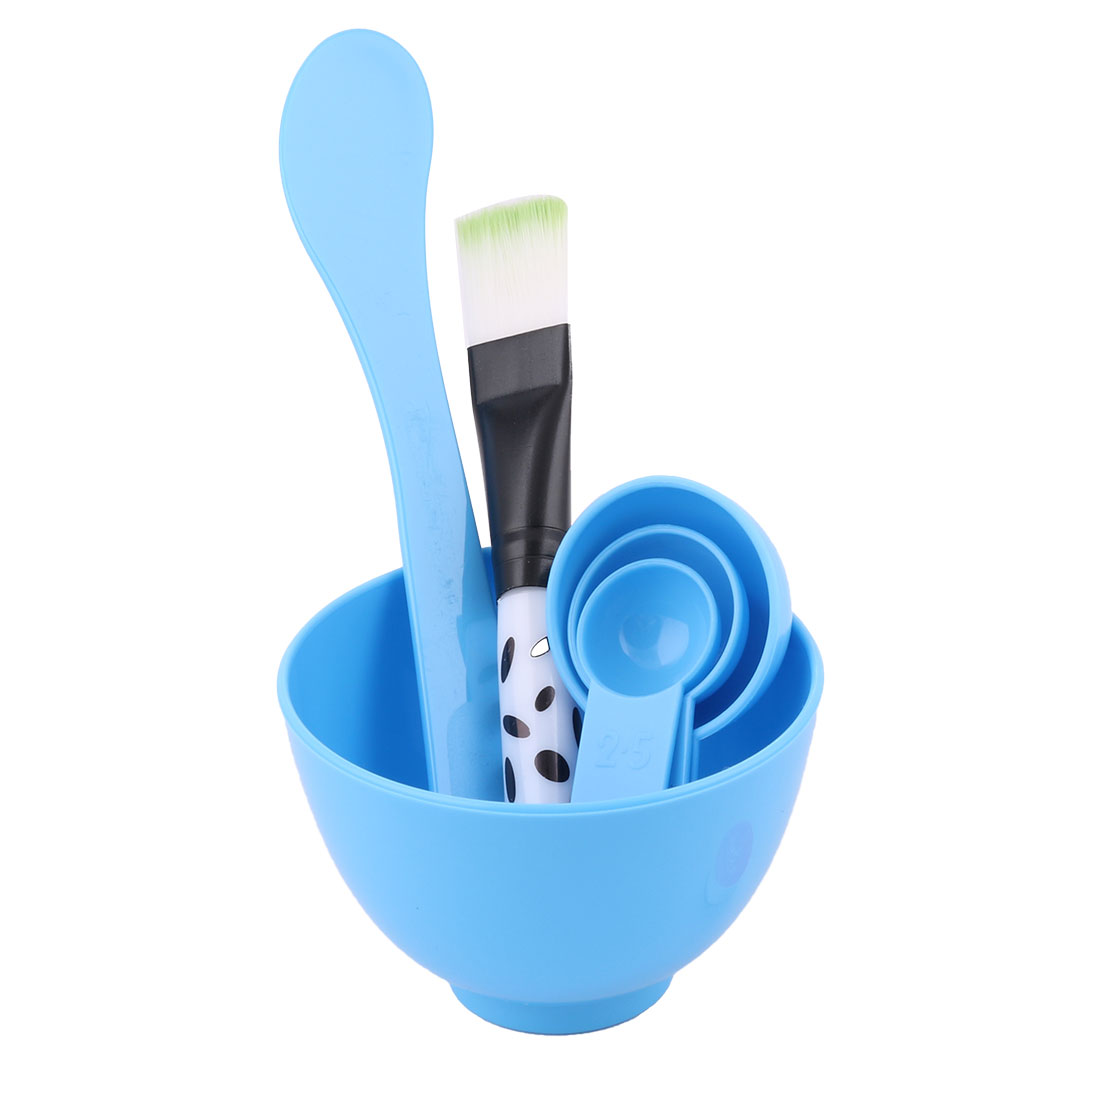 Blue 4 in 1 Cosmetic Tool Mask Mixing Stick Brush Spoon Bowl Kit